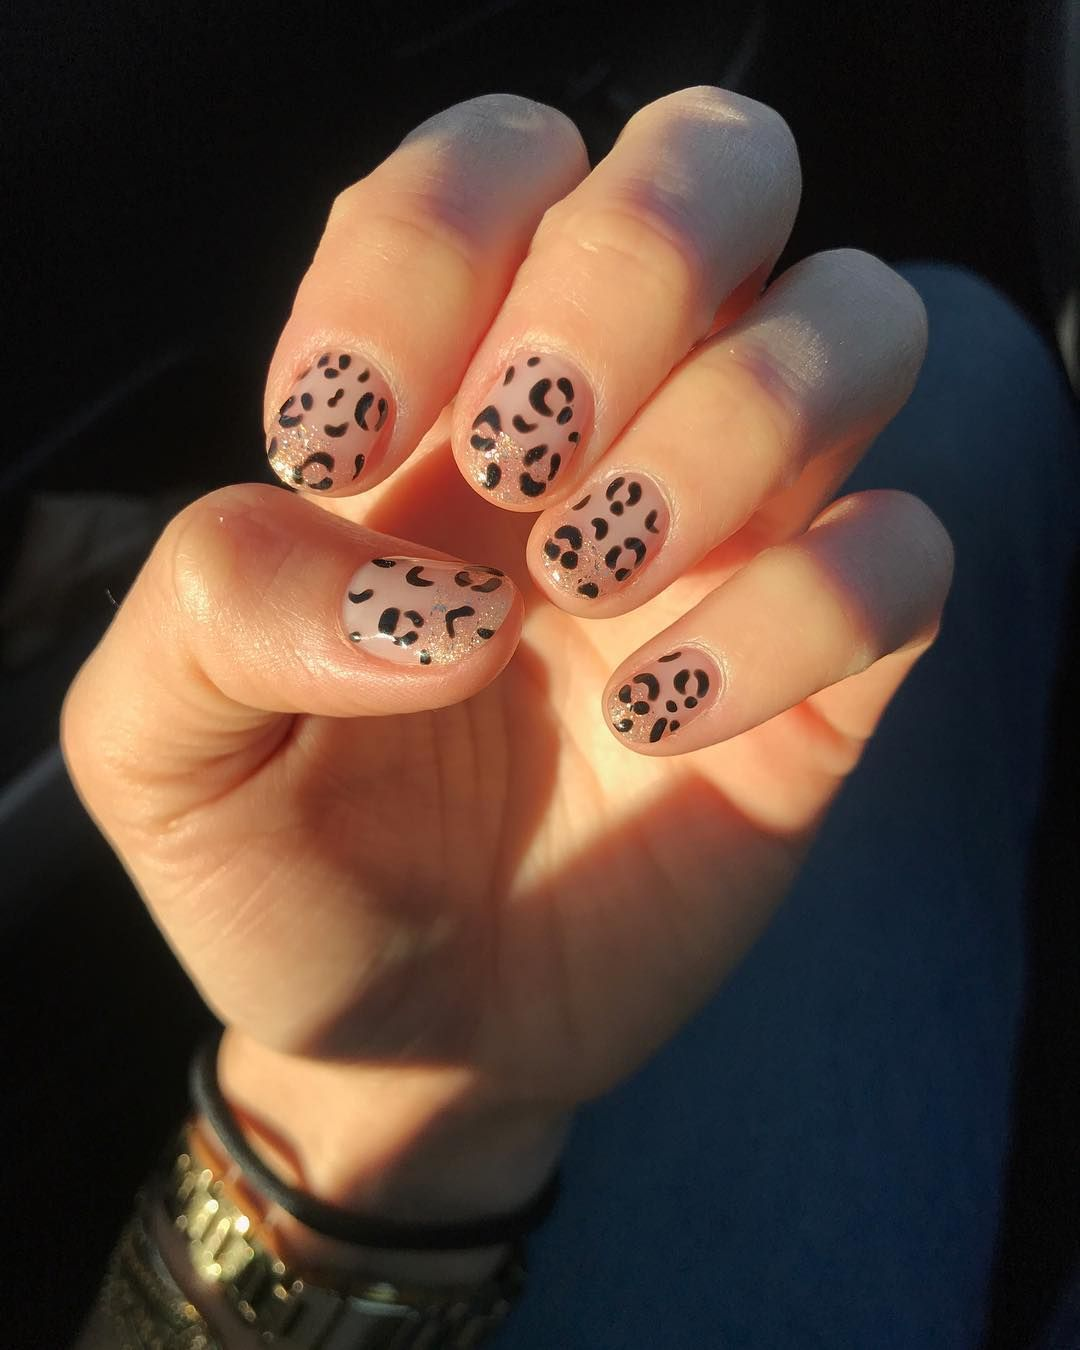 Animal Print Nail Art Is Your Go To Summer Accessory Cow Nails Cheetah Nail Designs Animal Print Manicure